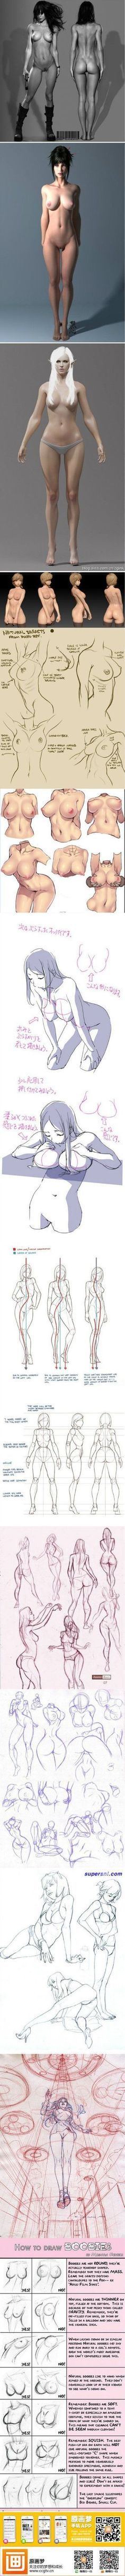 Body anatomy. How to draw female body.: